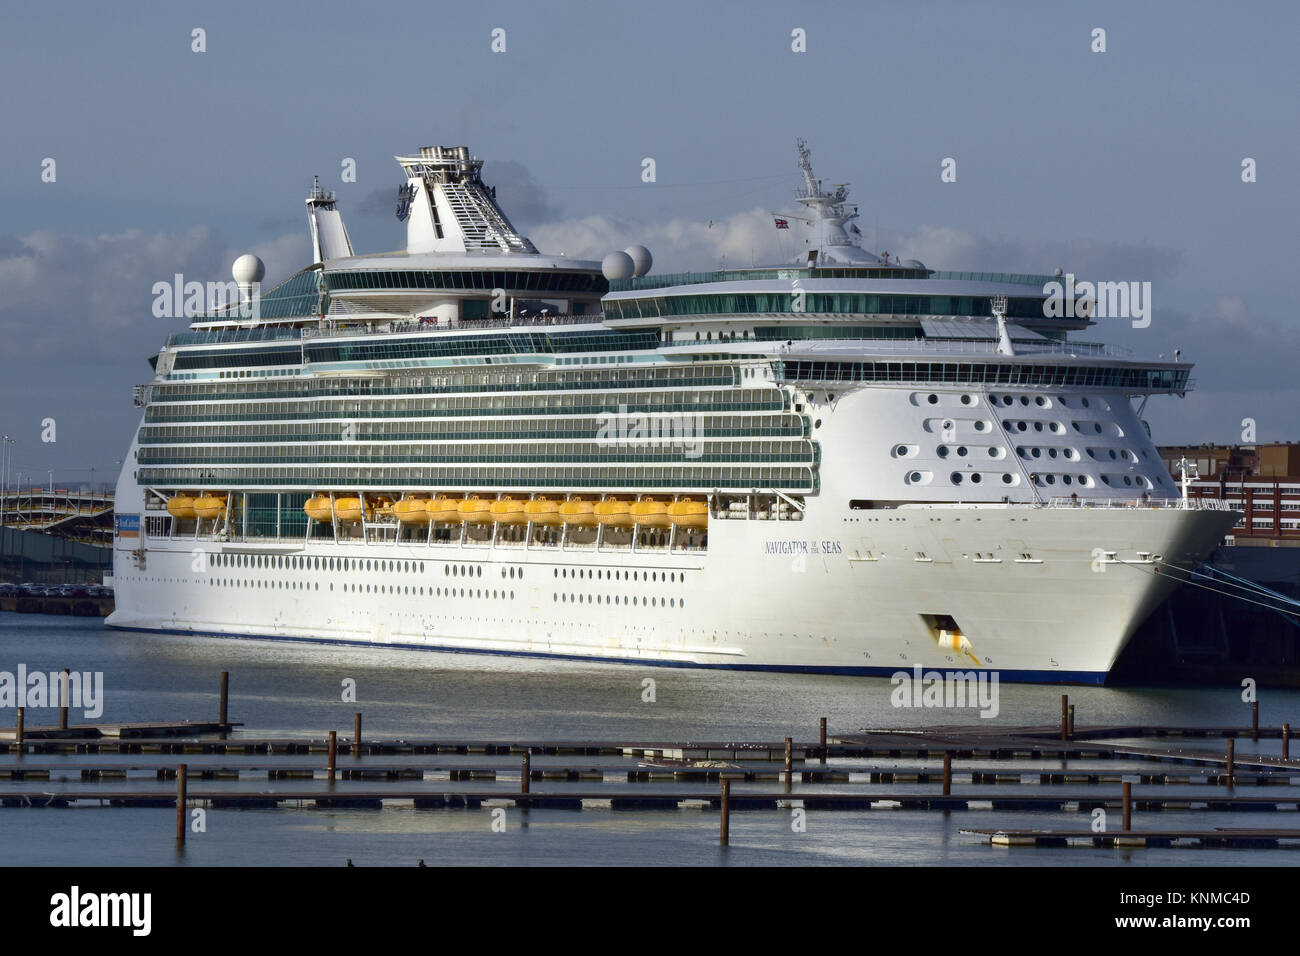 the navigator of the seas cruise liner alongside at the cruise terminal in the port of Southampton docks in Hampshire, - Stock Image